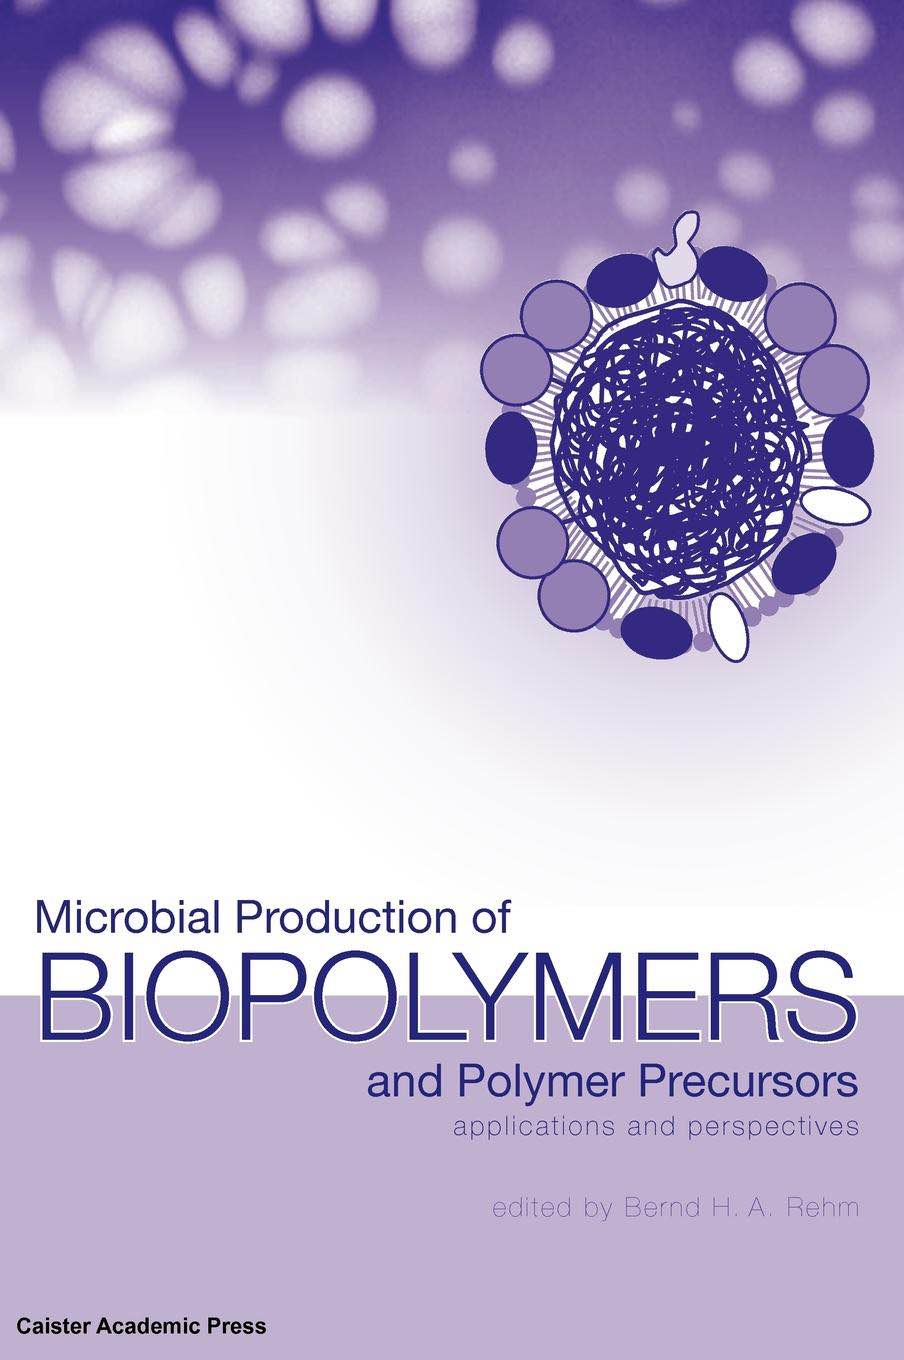 Microbial Production of Biopolymers and Polymer Precursors book